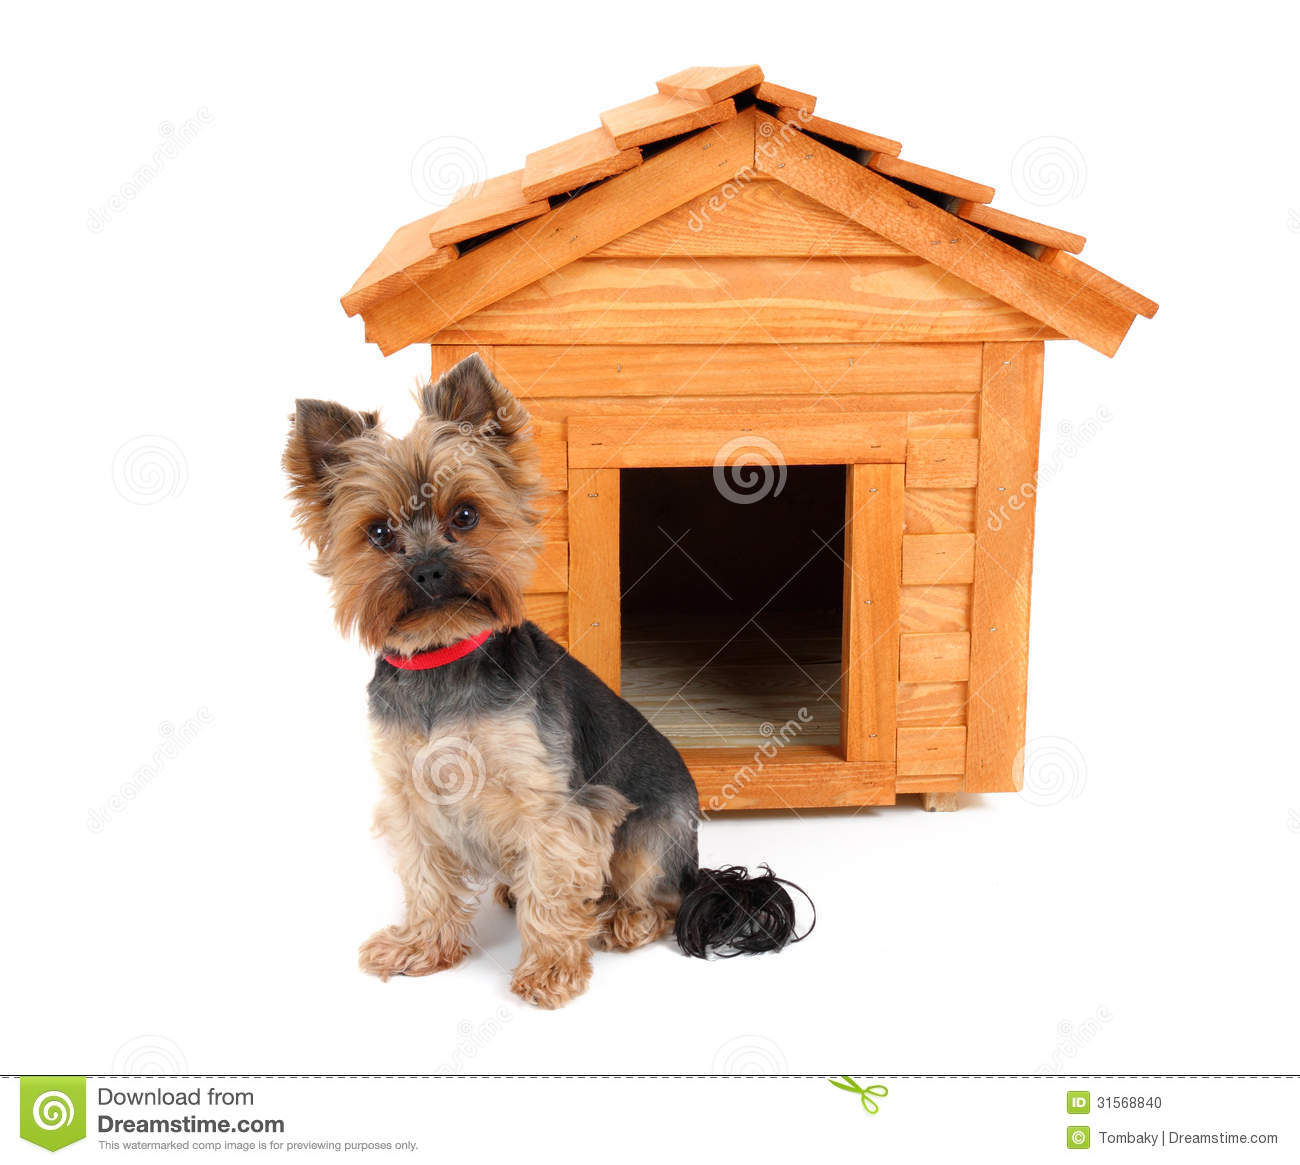 Home Design Ideas For Dogs: Small Dog House Plans